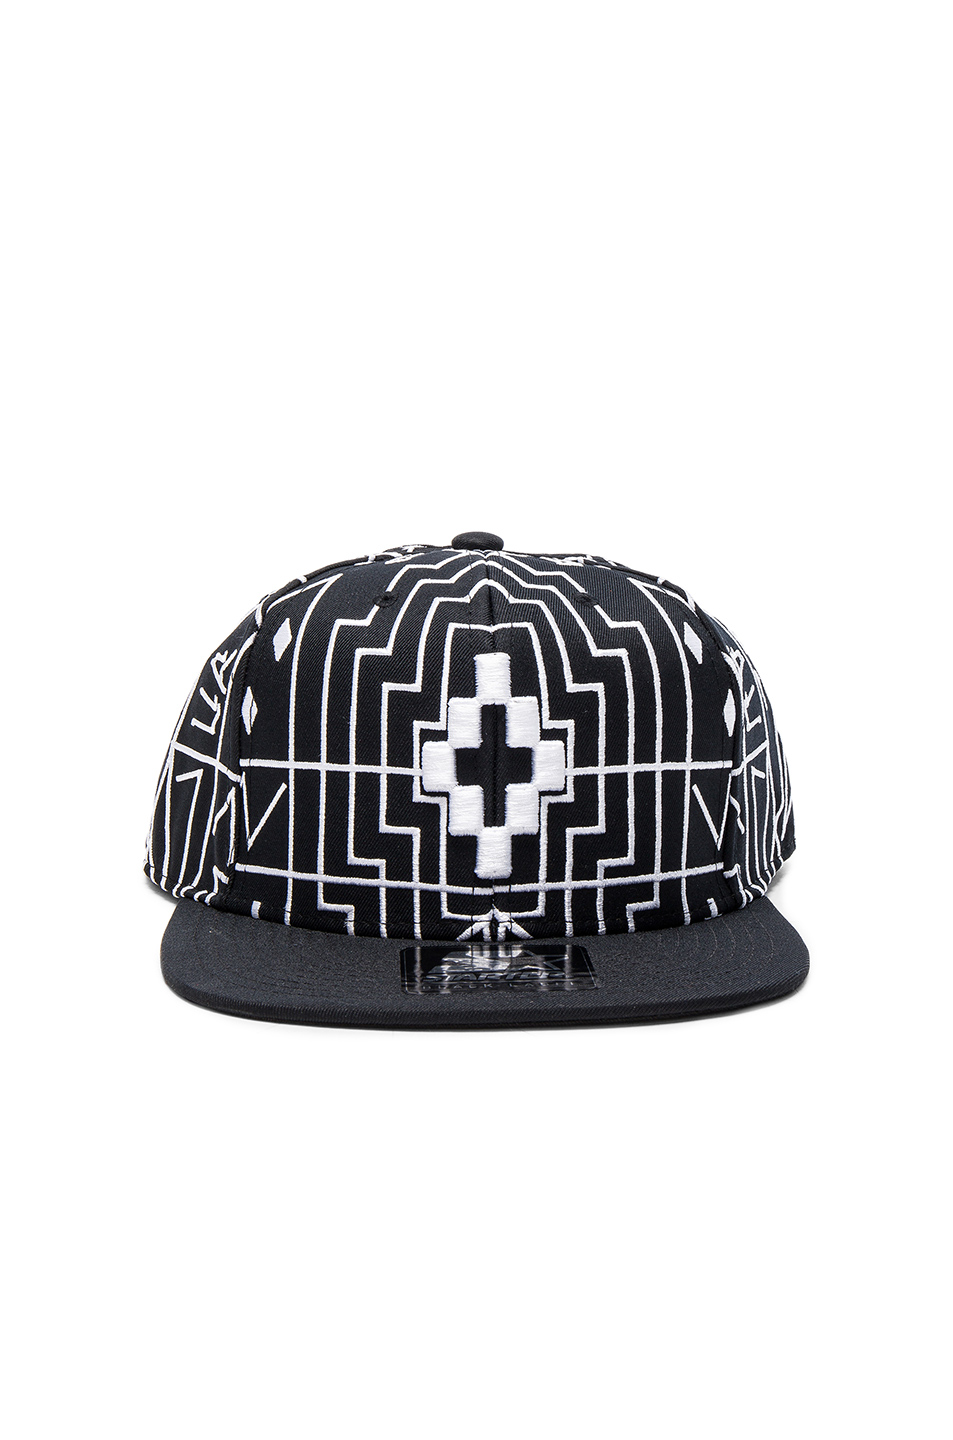 Marcelo Burlon Starter Salomon Cap in Black,Abstract